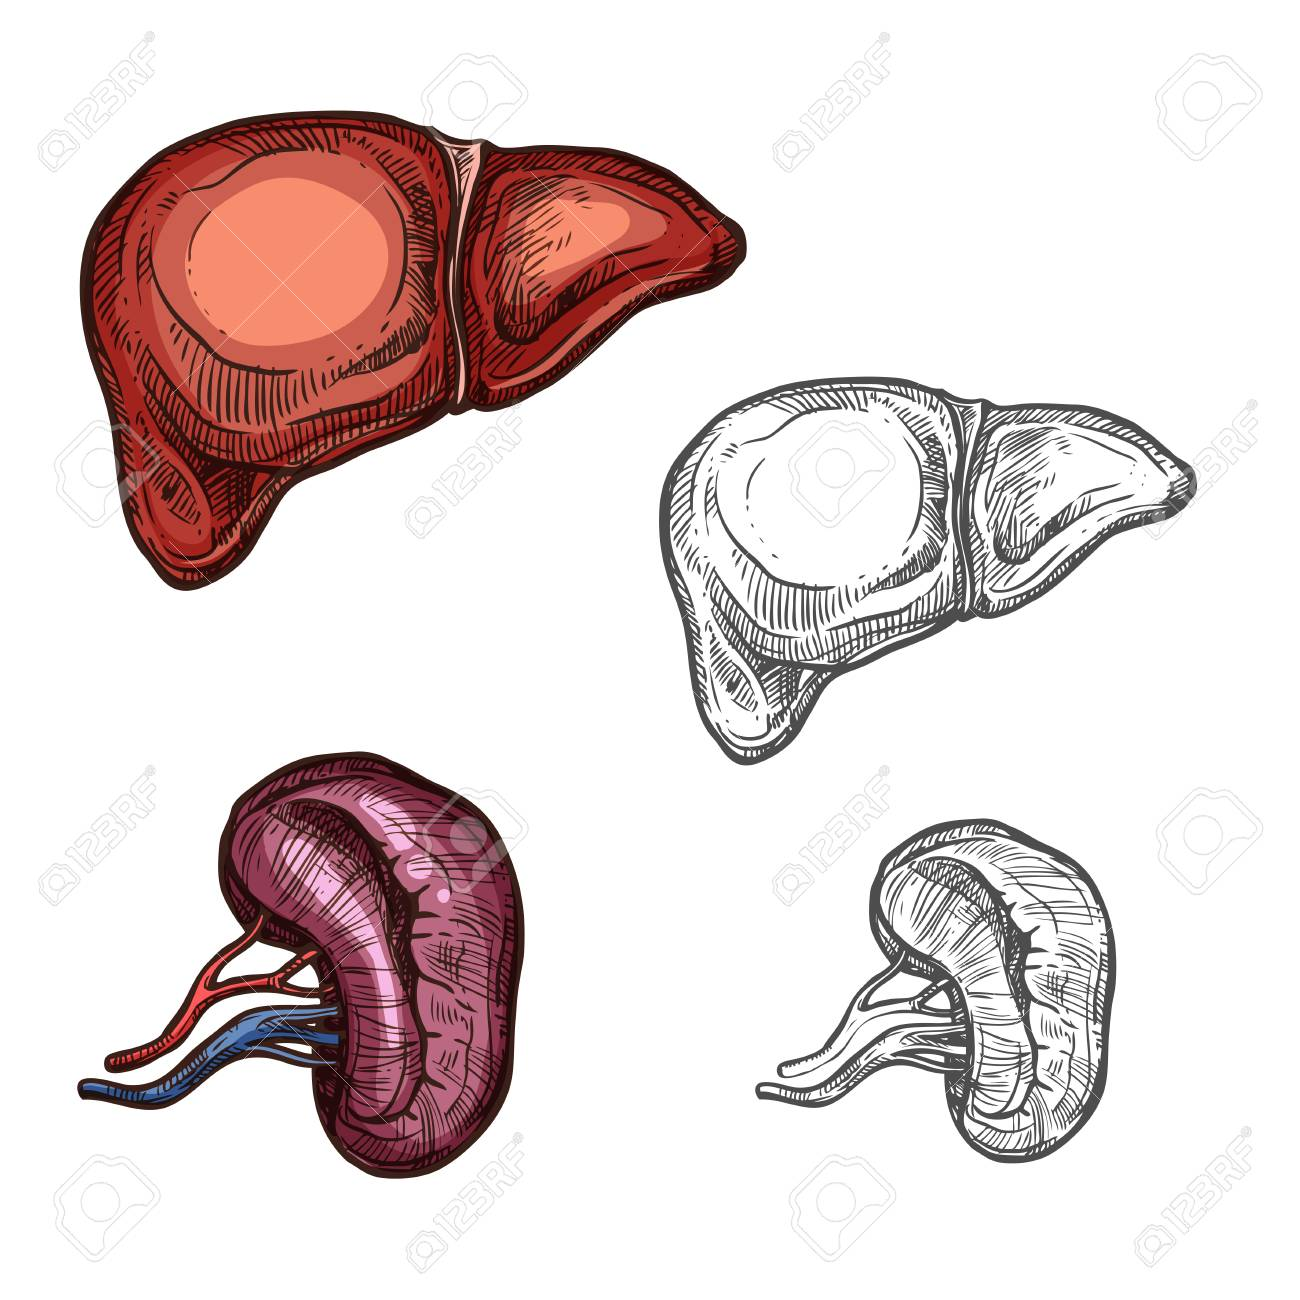 Liver And Kidney Sketch Icons Of Human Organs Vector Isolated